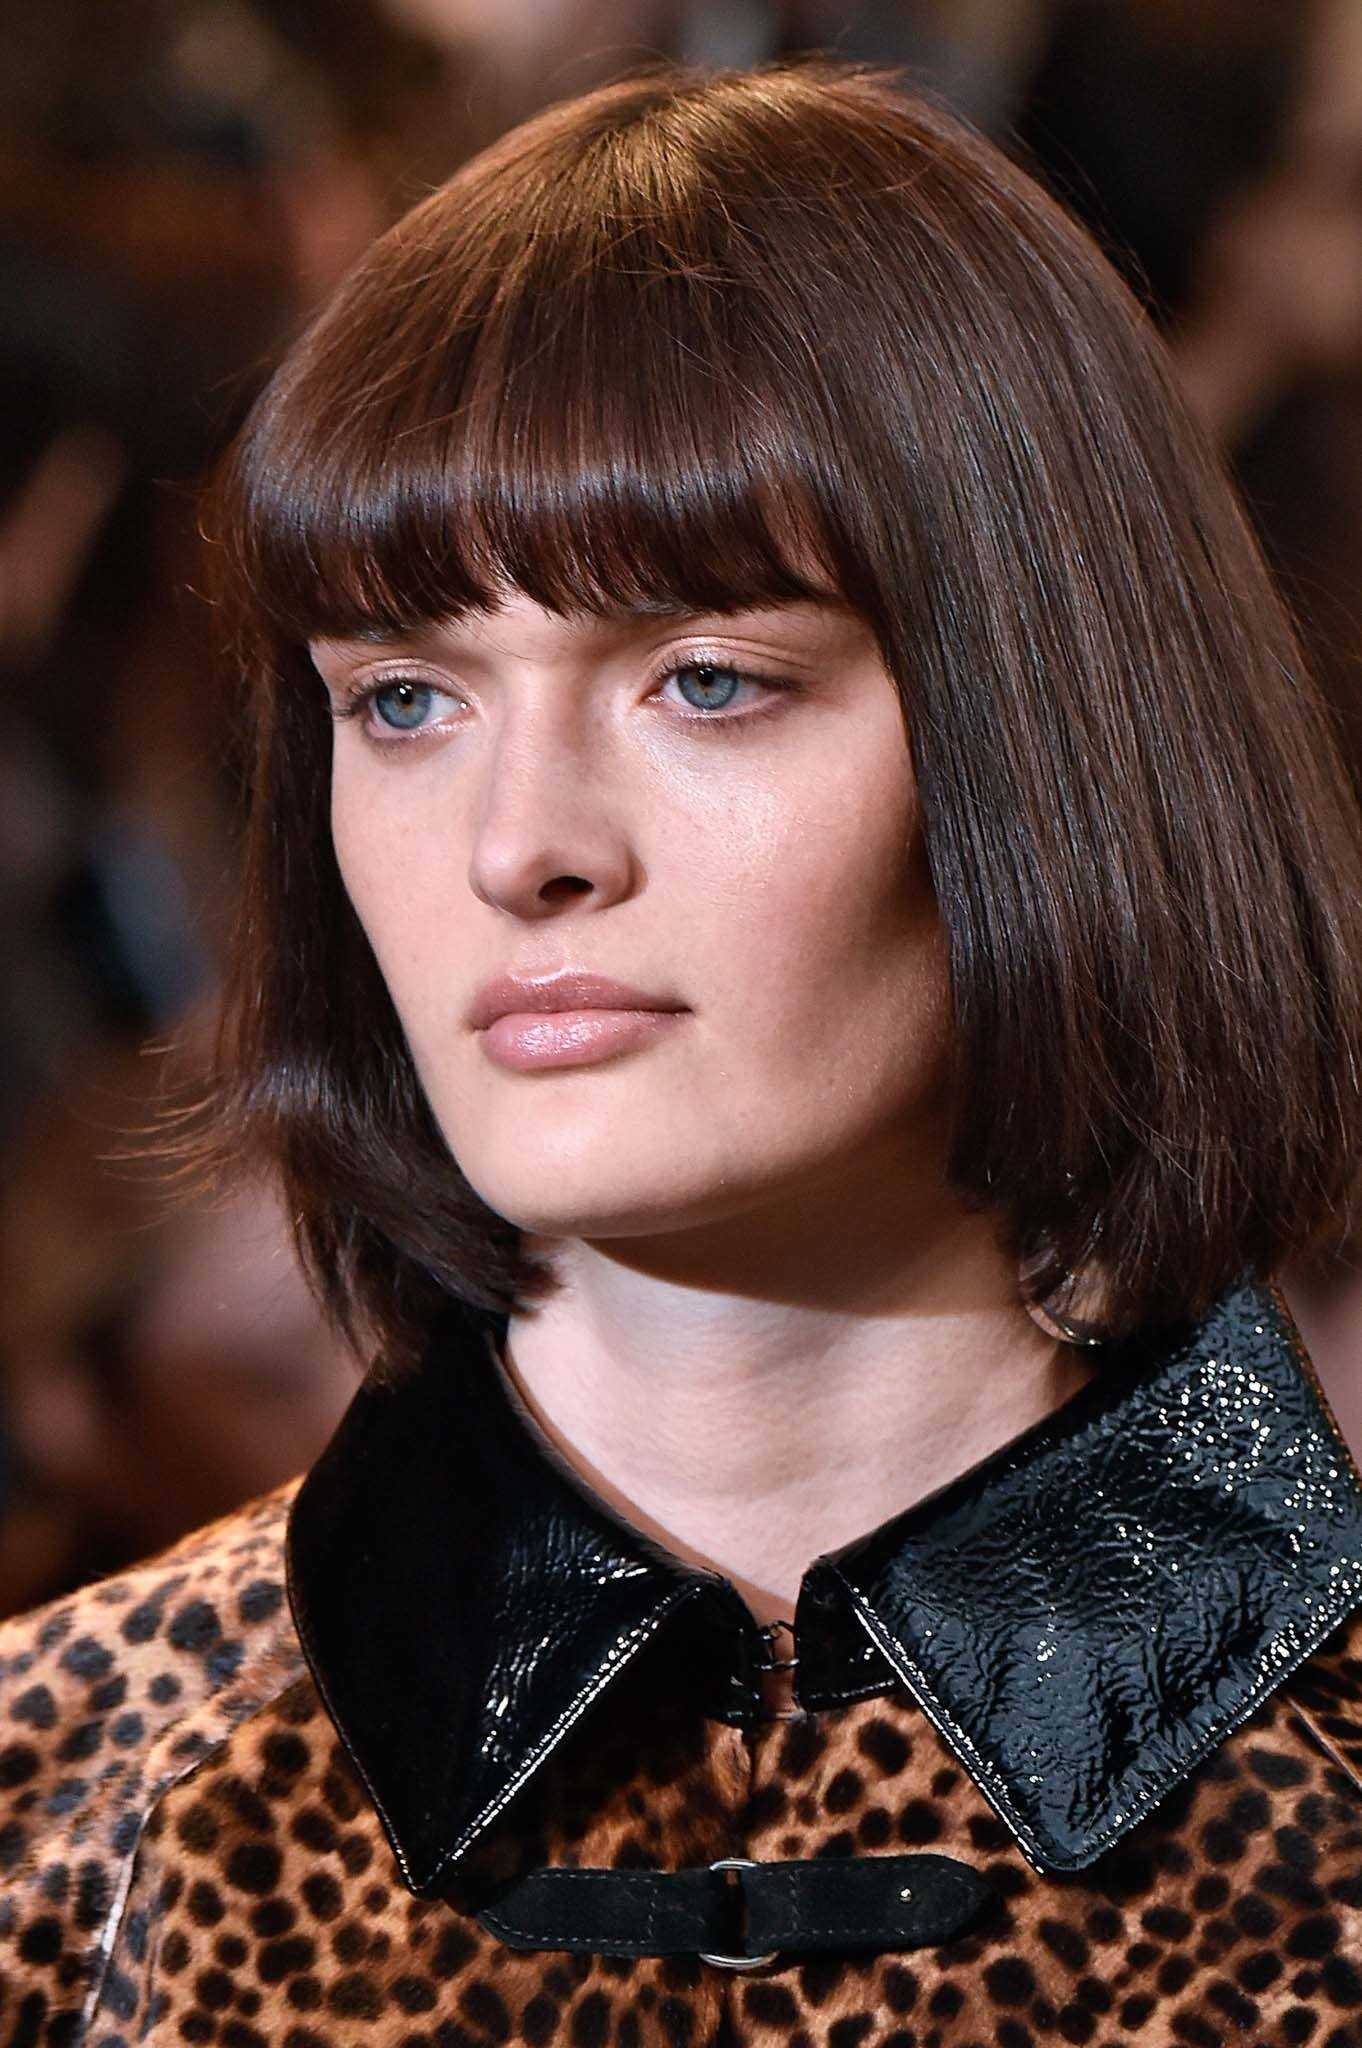 Retro hairstyles: Close up shot of a model with chestnut brown bob with bangs on the Isabel Marant runway